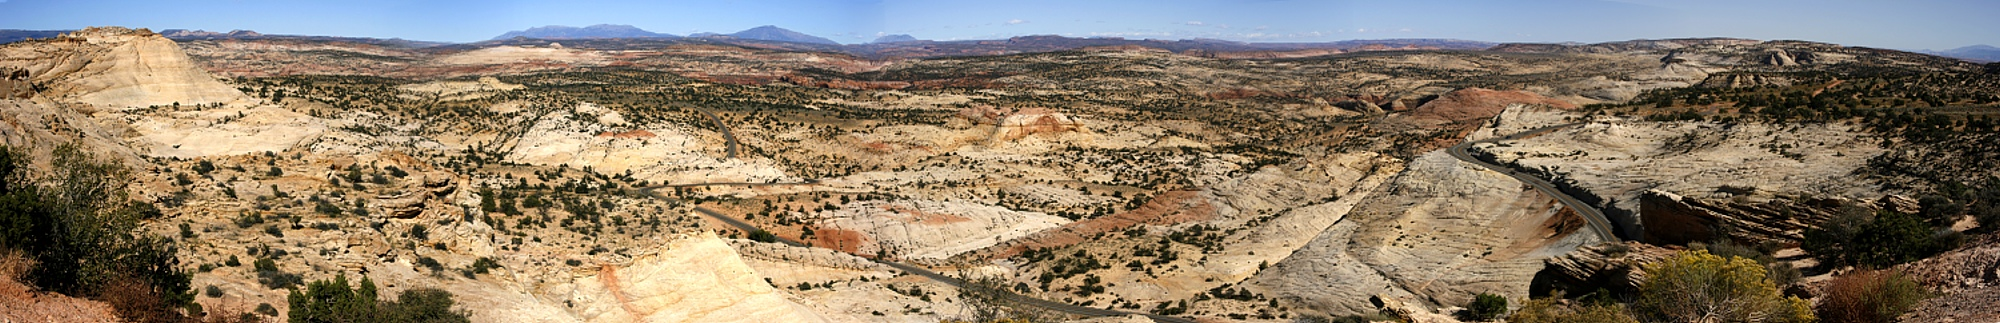 Escalante Overlook